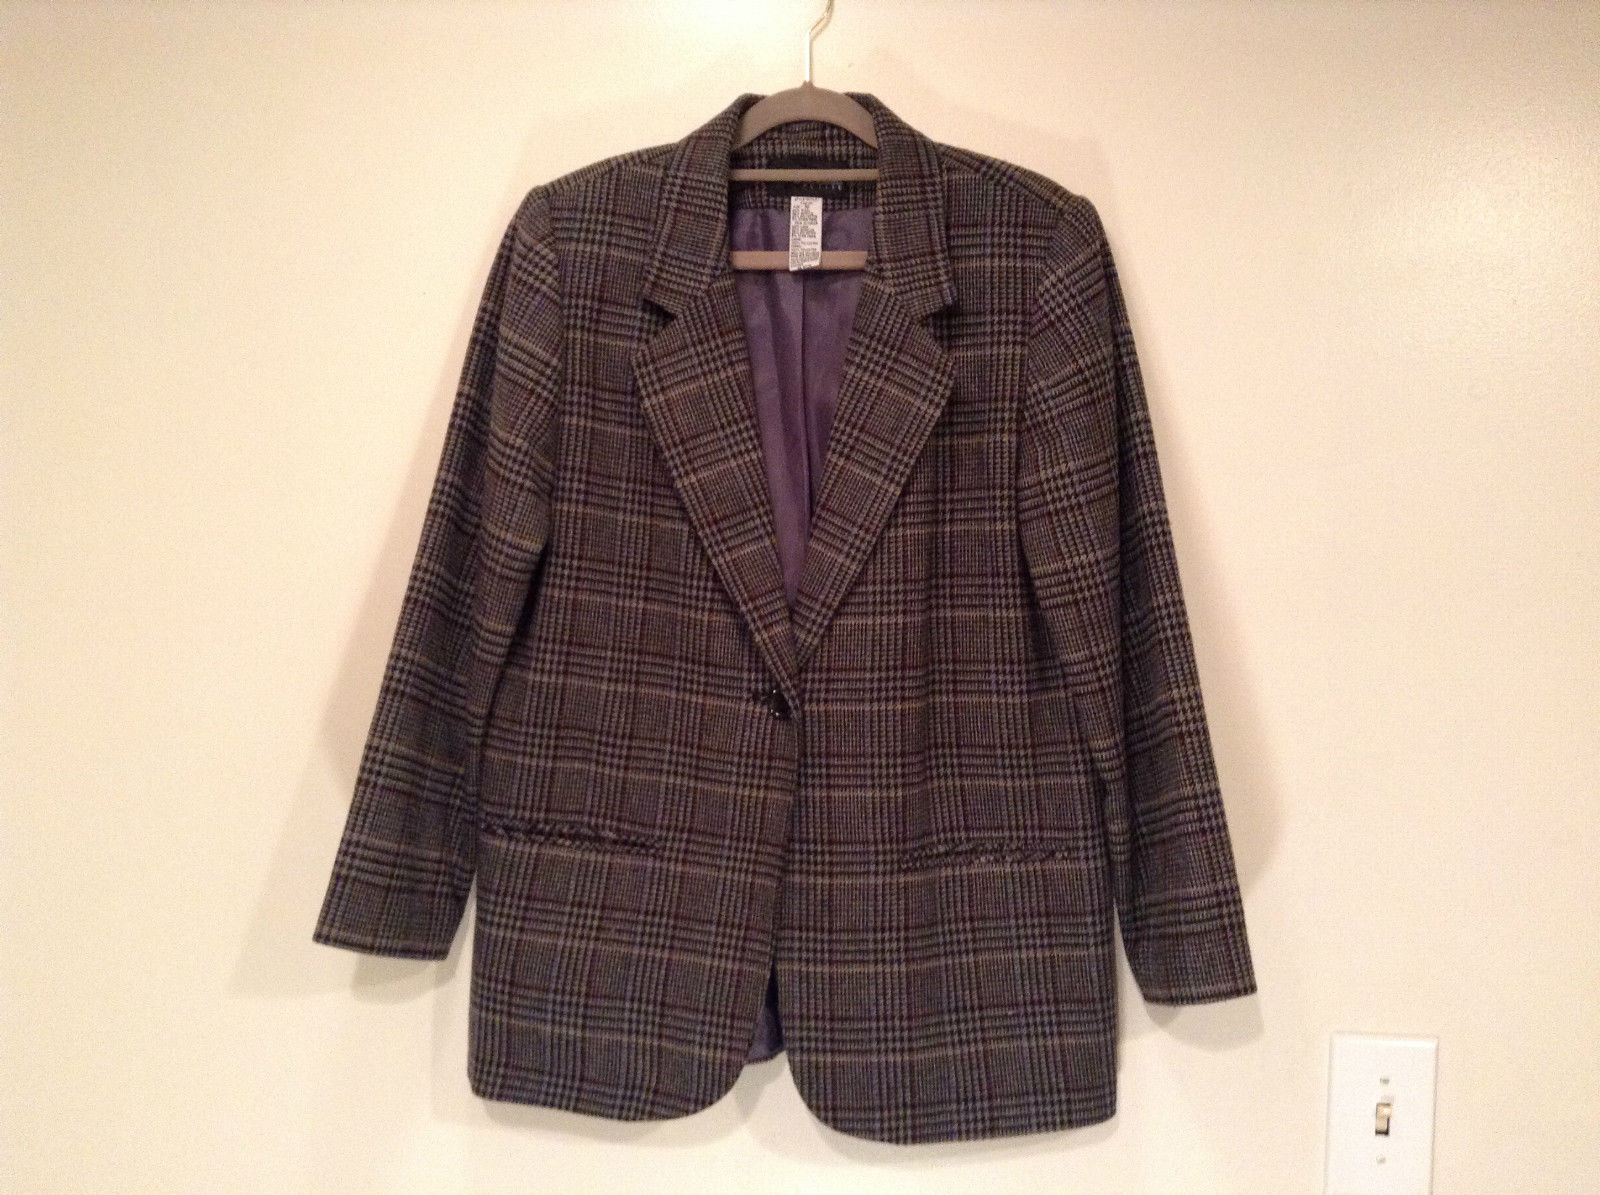 Sag Harbor Dark Gray Plaid Fully Lined Blazer Suit Jacket Size 10 Petite